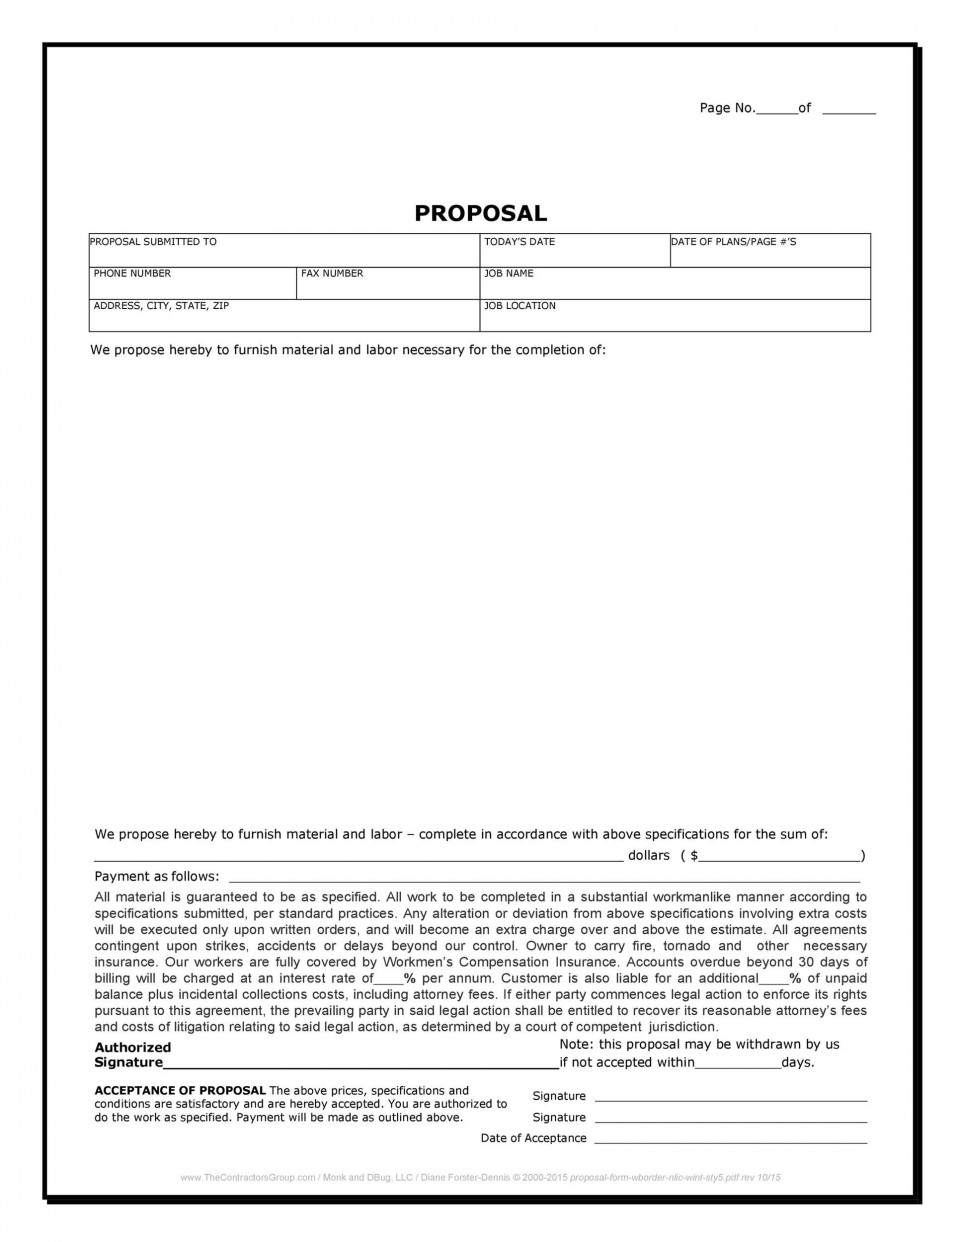 009 Archaicawful Construction Job Proposal Template Design  Example960